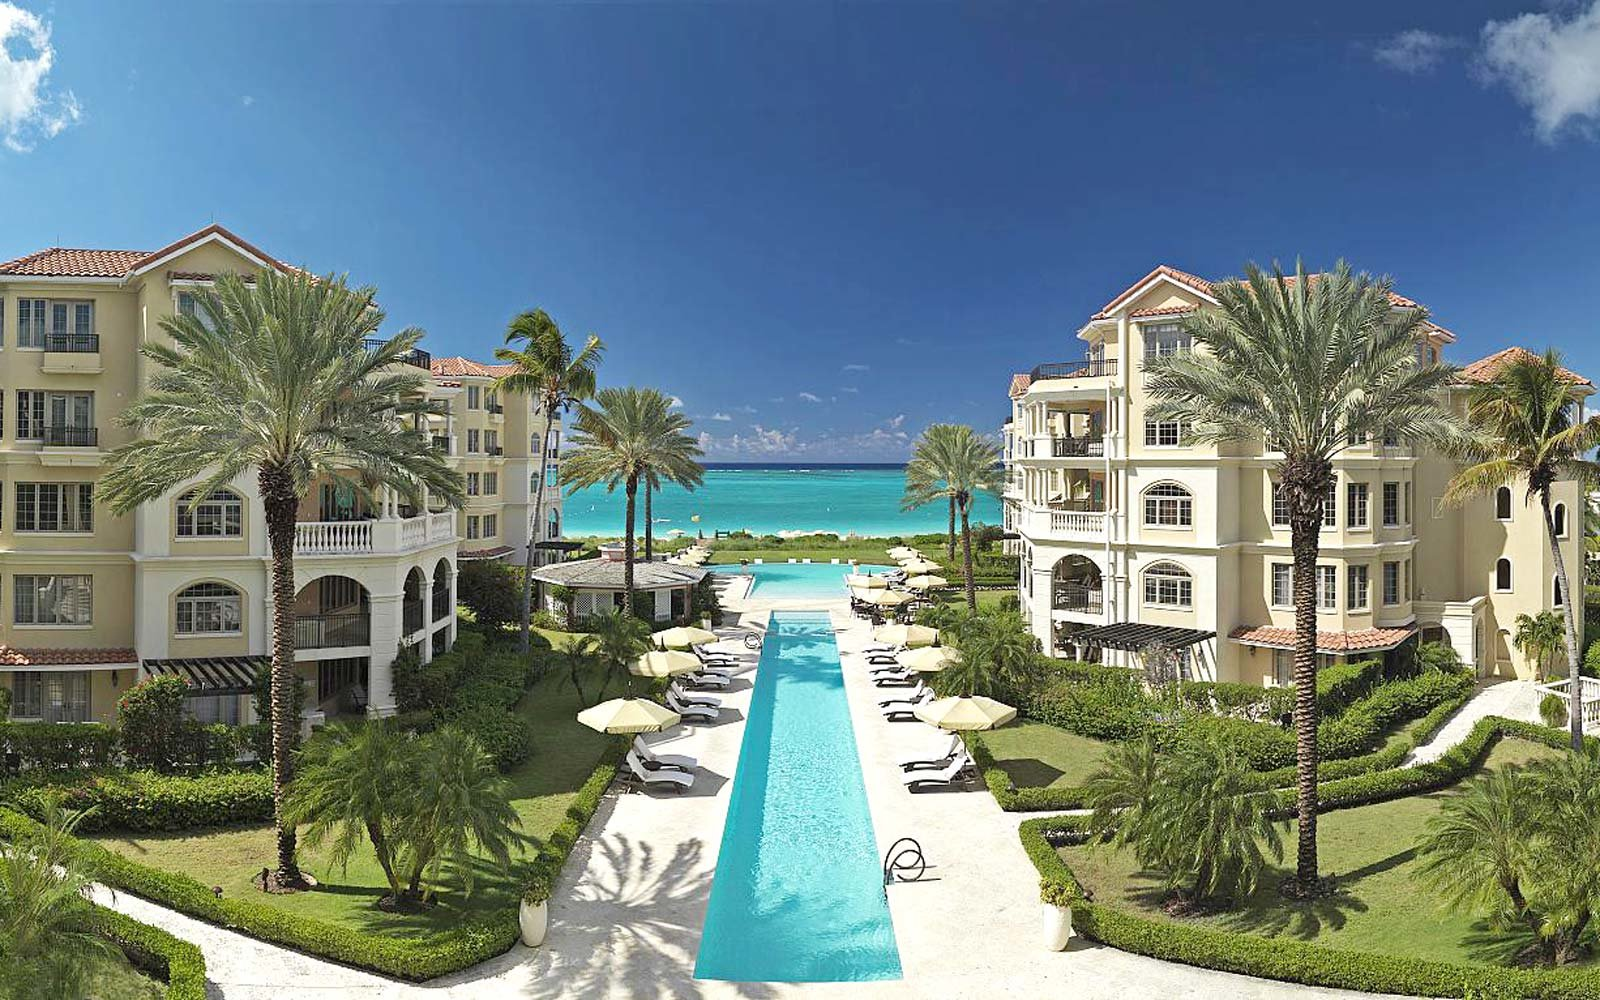 Vacation in the Turks & Caicos at the Somerset on Grace Bay